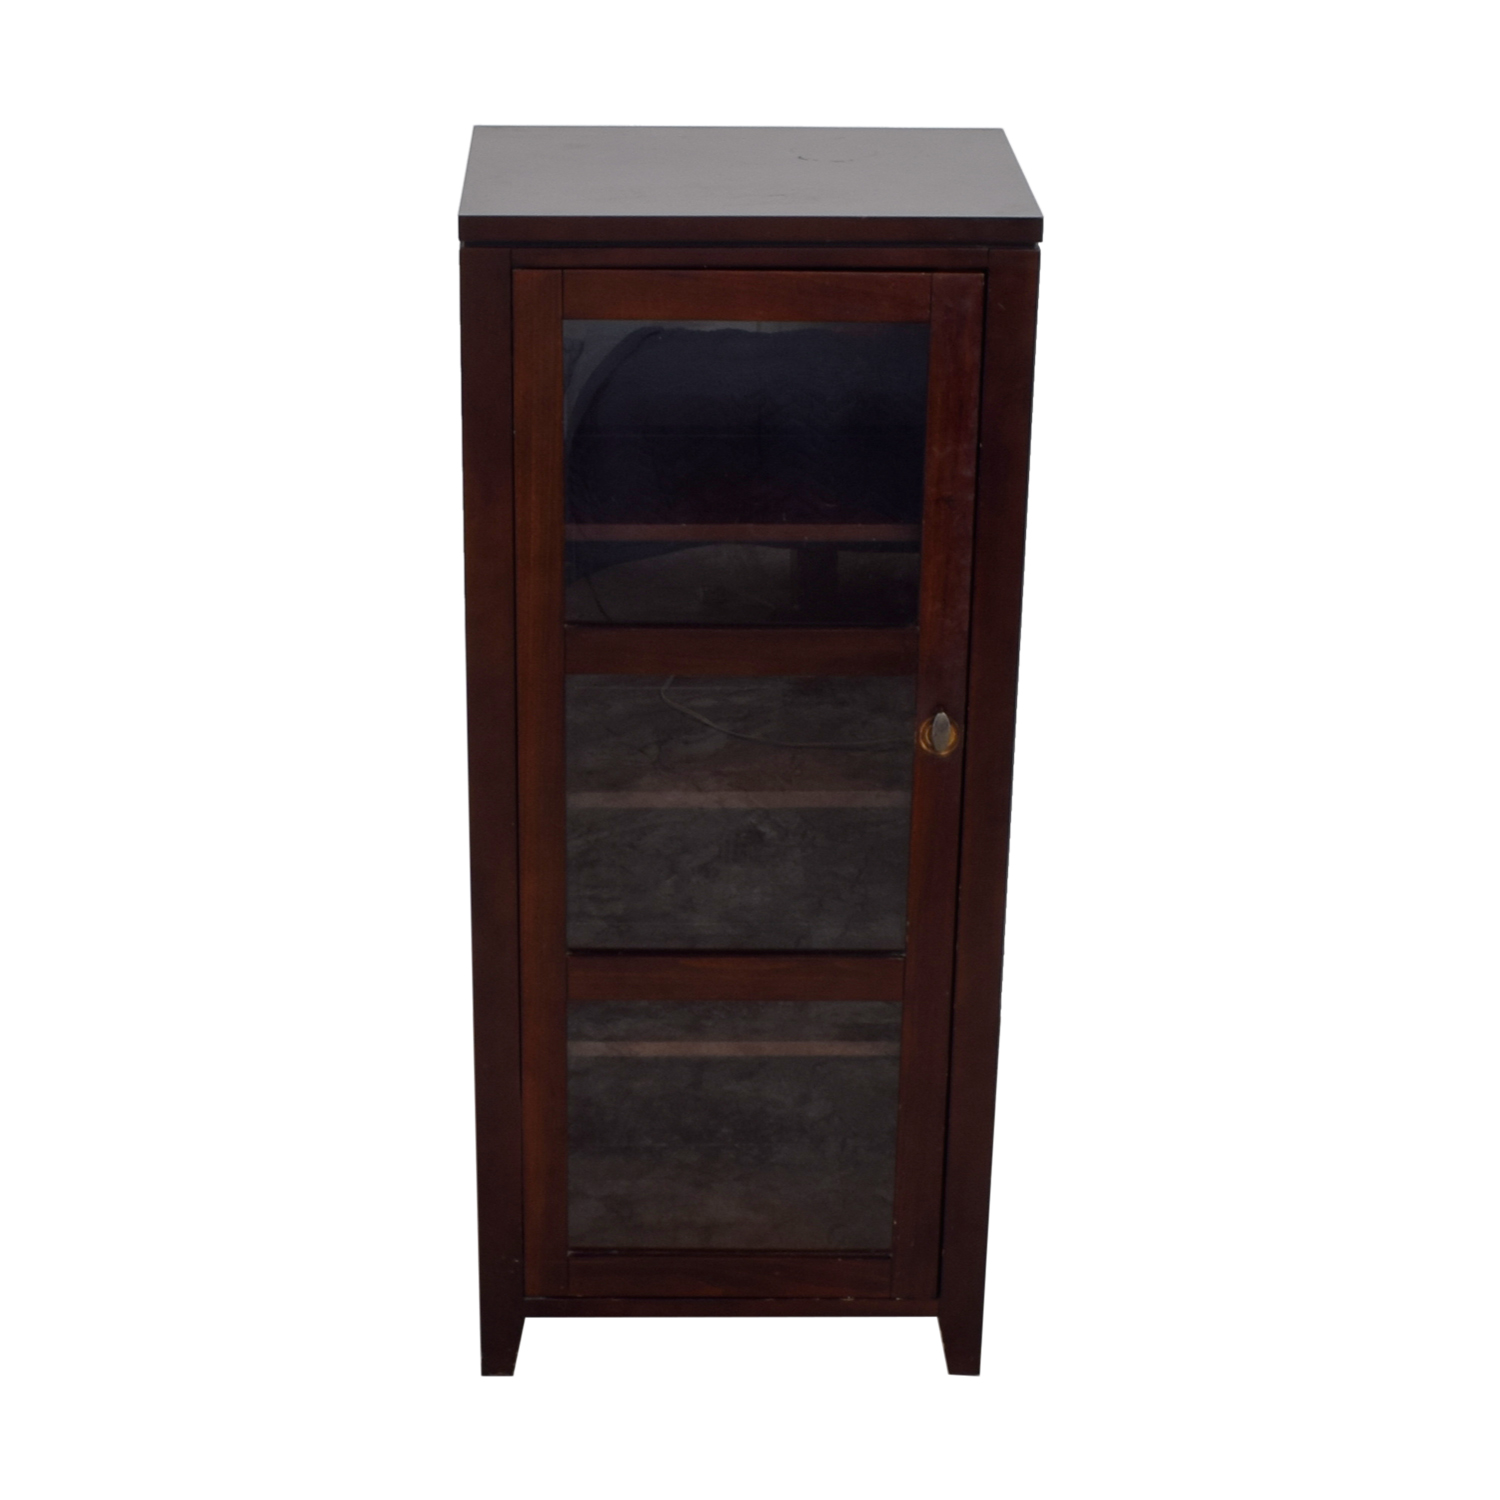 Crate & Barrel Crate & Barrel Bar Cabinet with Glass Door second hand